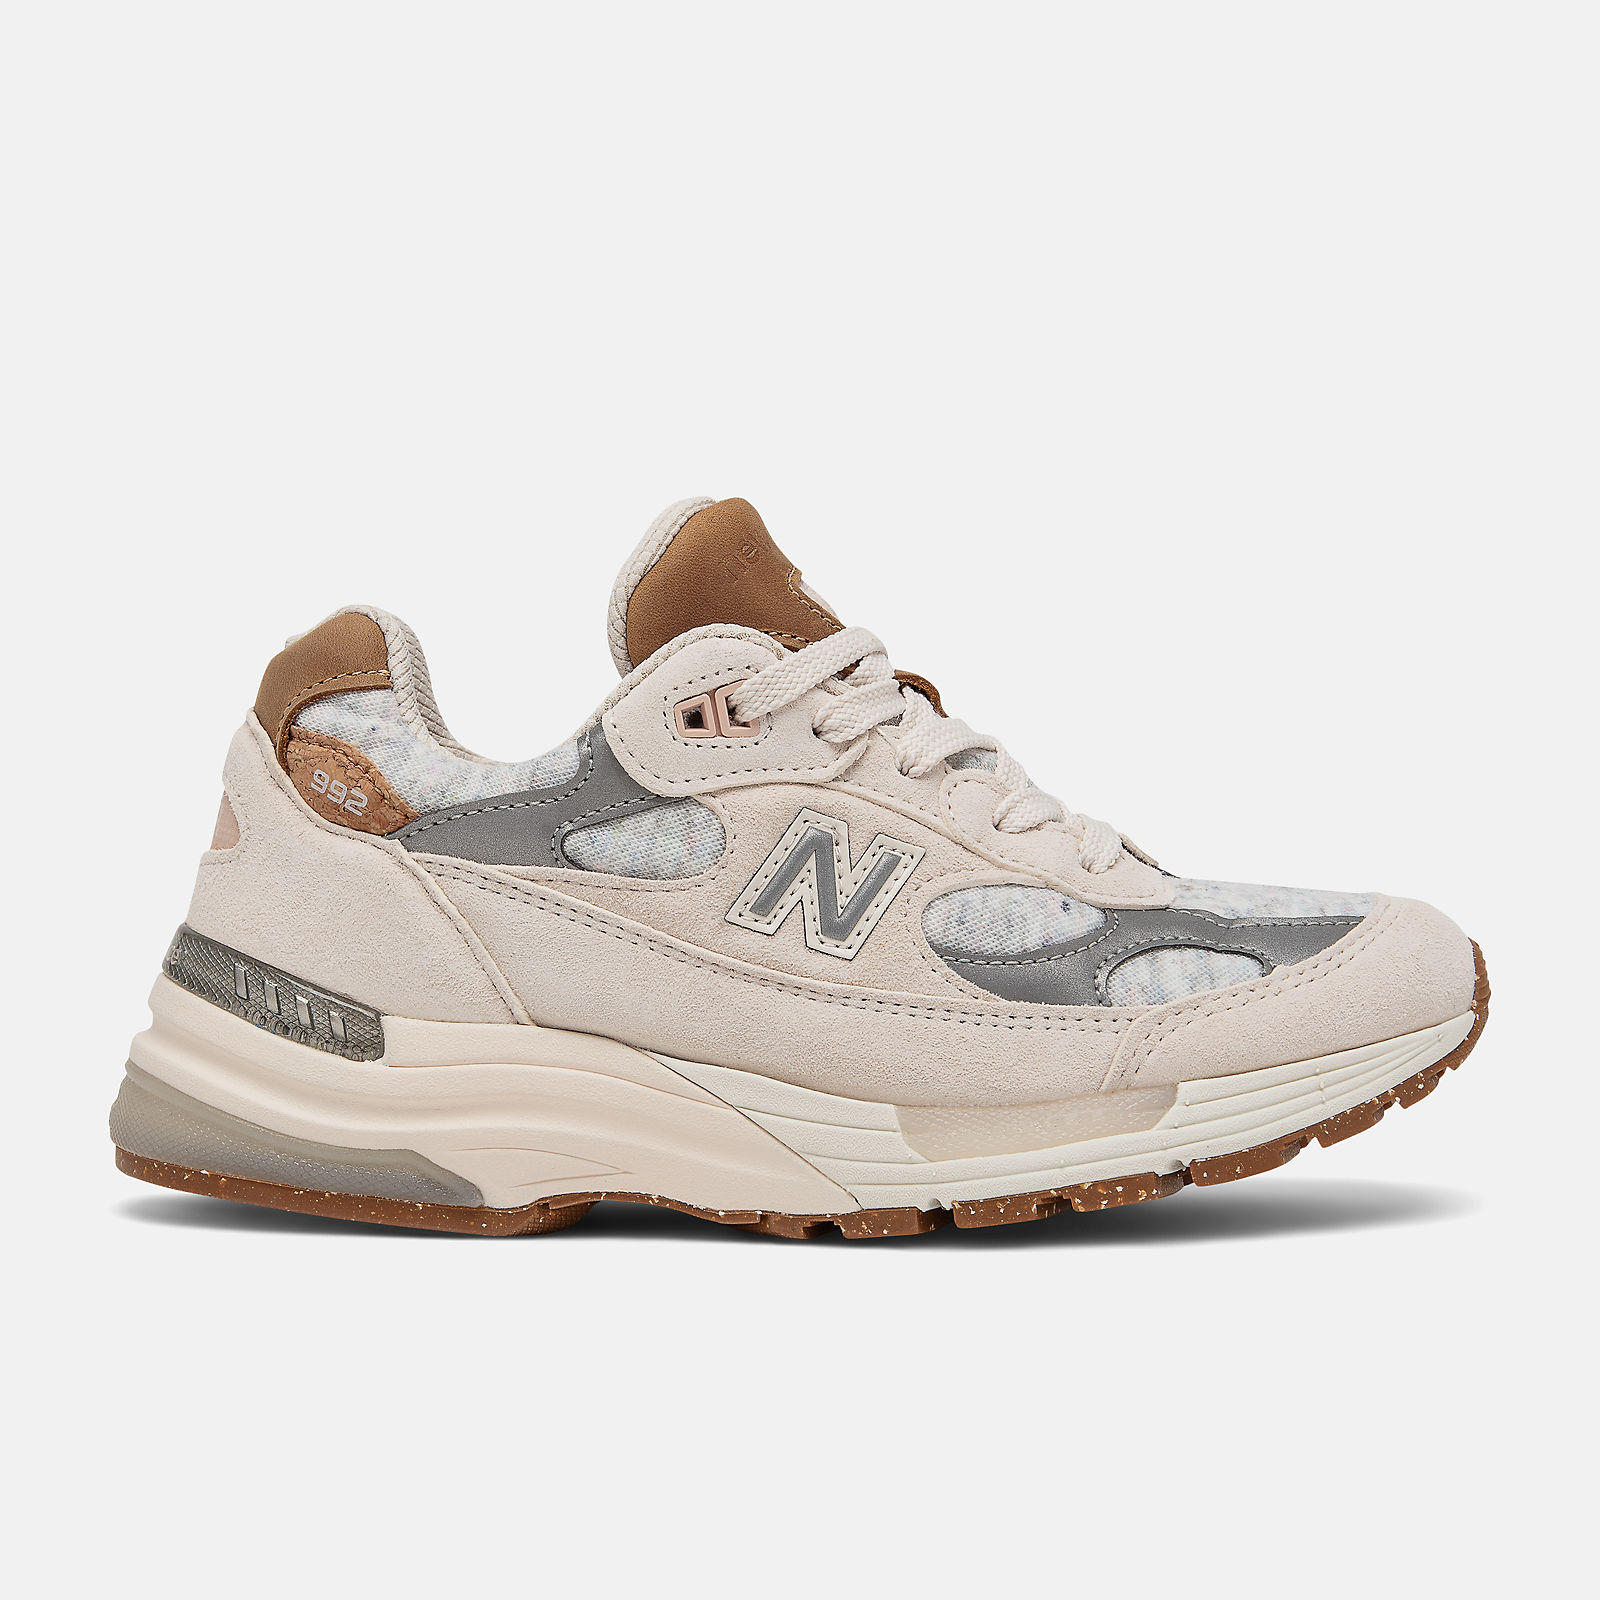 Made In US 992 - New Balance